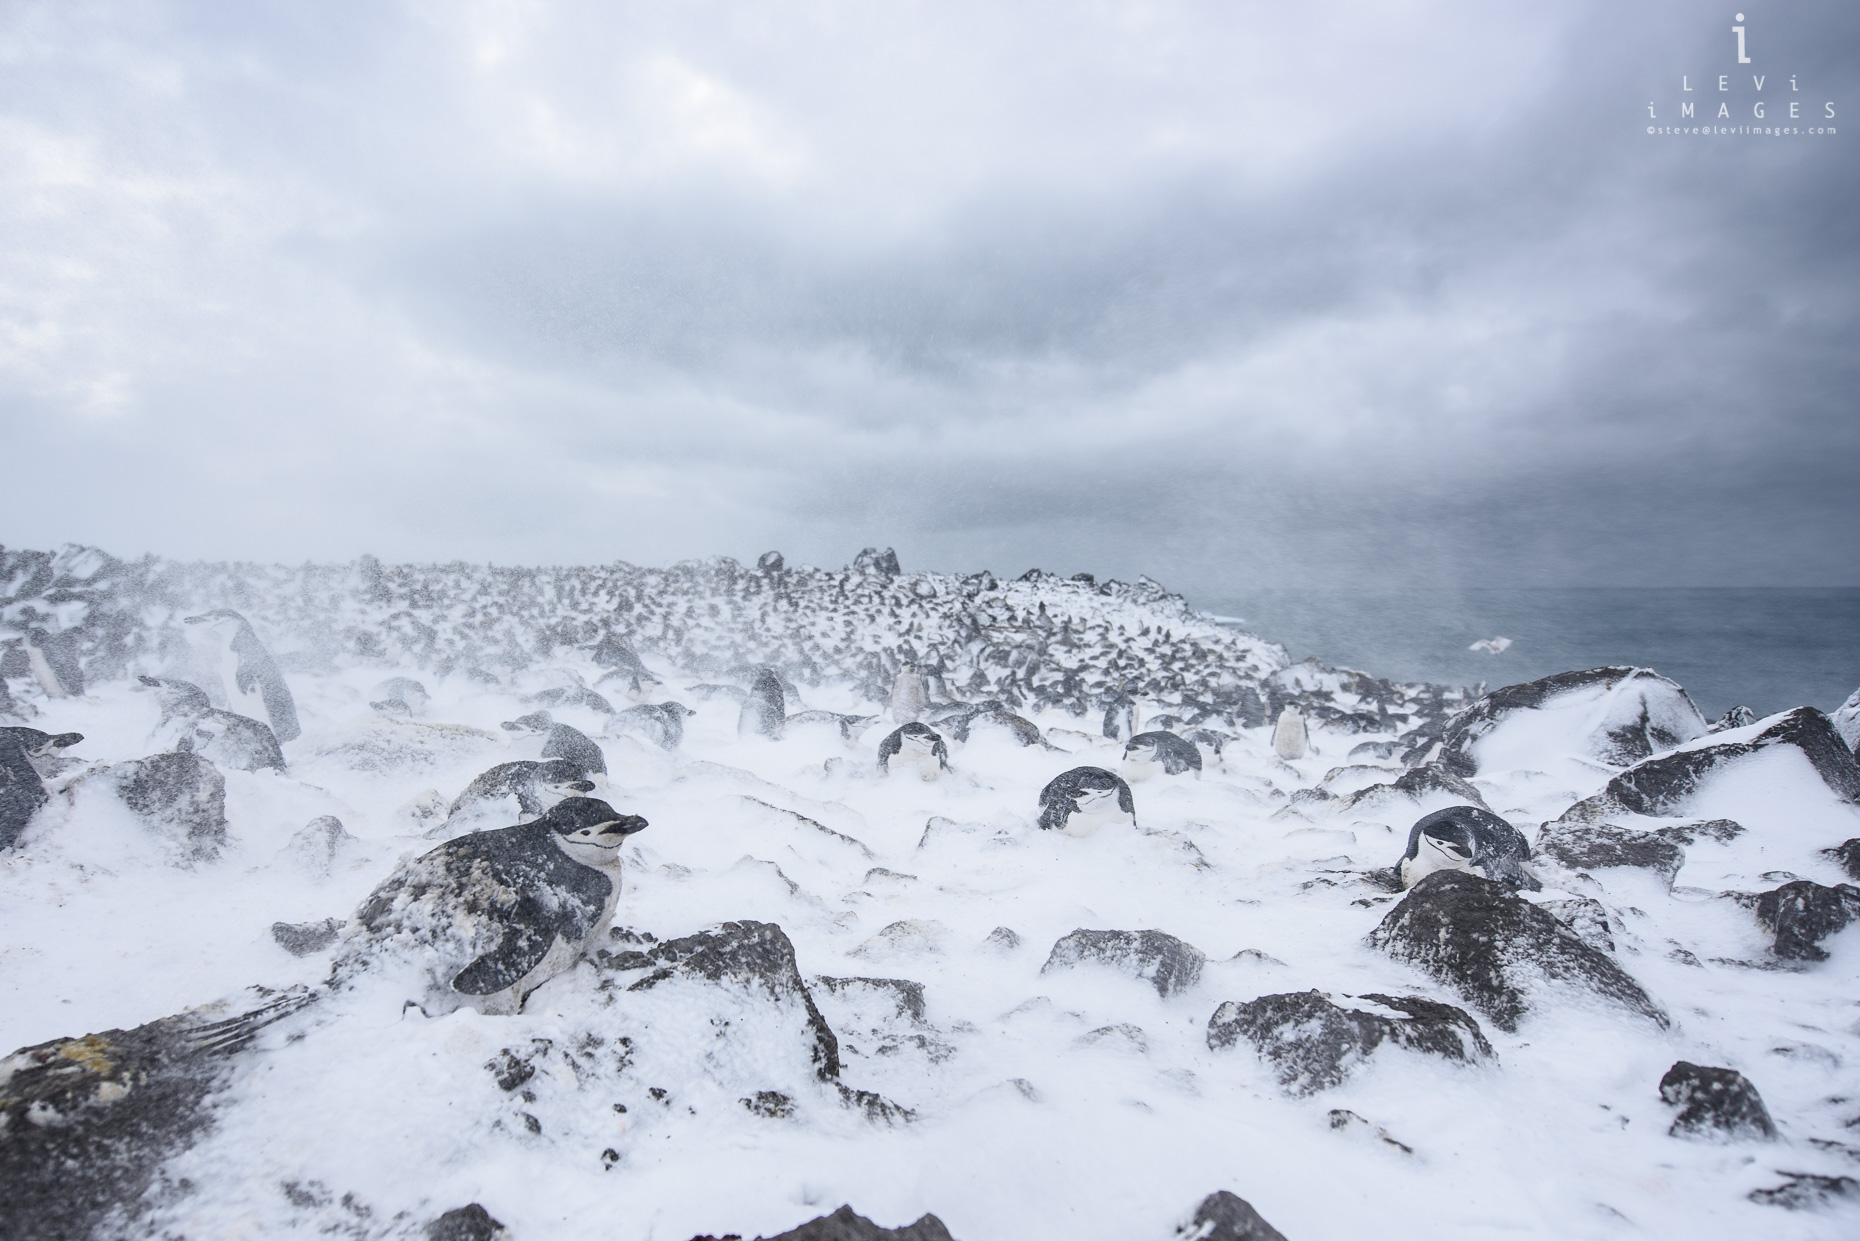 Chinstrap penguin (Pygoscelis antarcticus) colony during snowstorm. Penguin Island, Antarctica